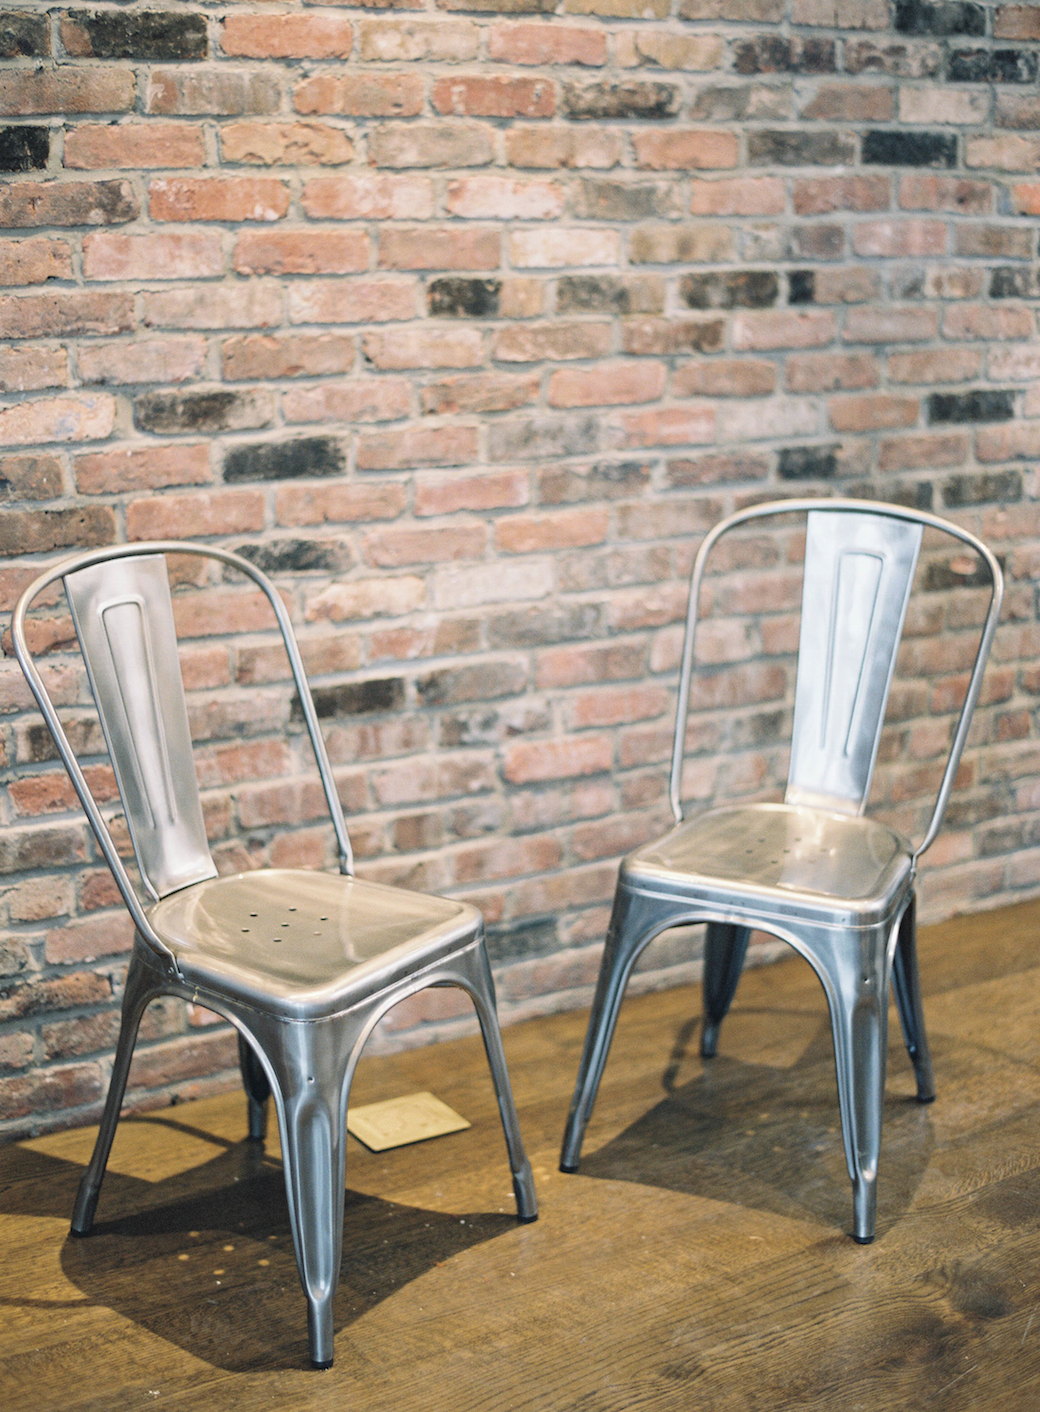 these metal chairs | jen huang photo | jenhuangblog.com ...